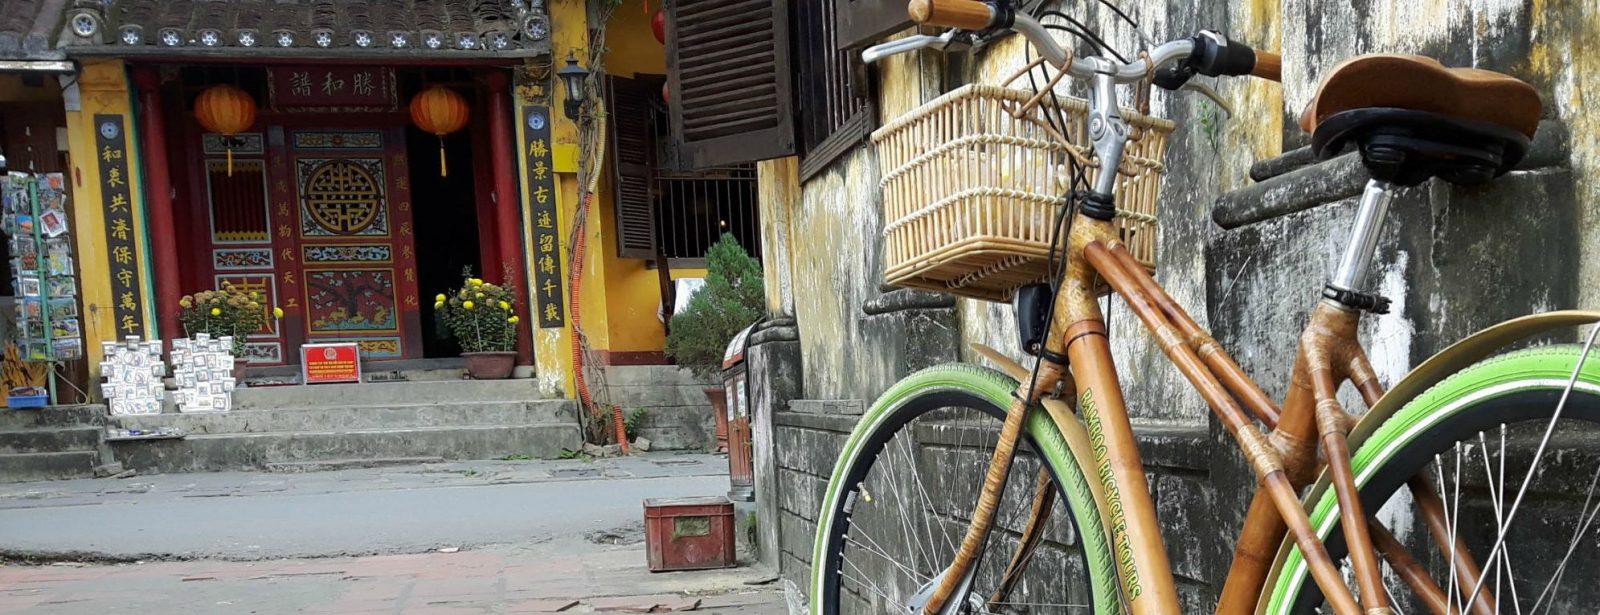 Bamboo Bike Over ons